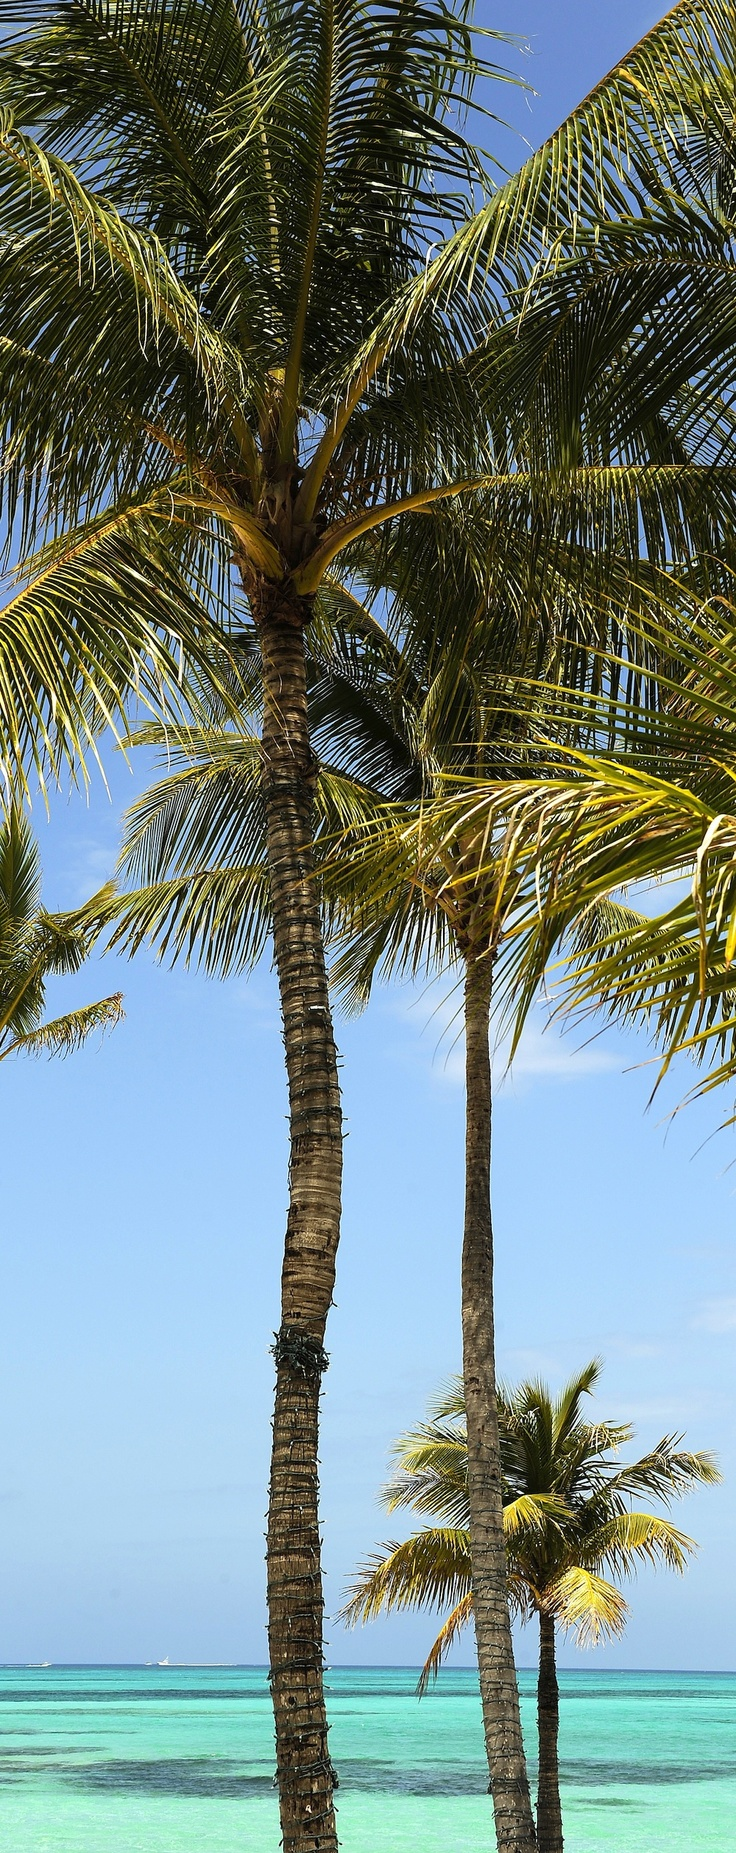 Catch some shade on the beach in Nassau Paradise Island, The Bahamas